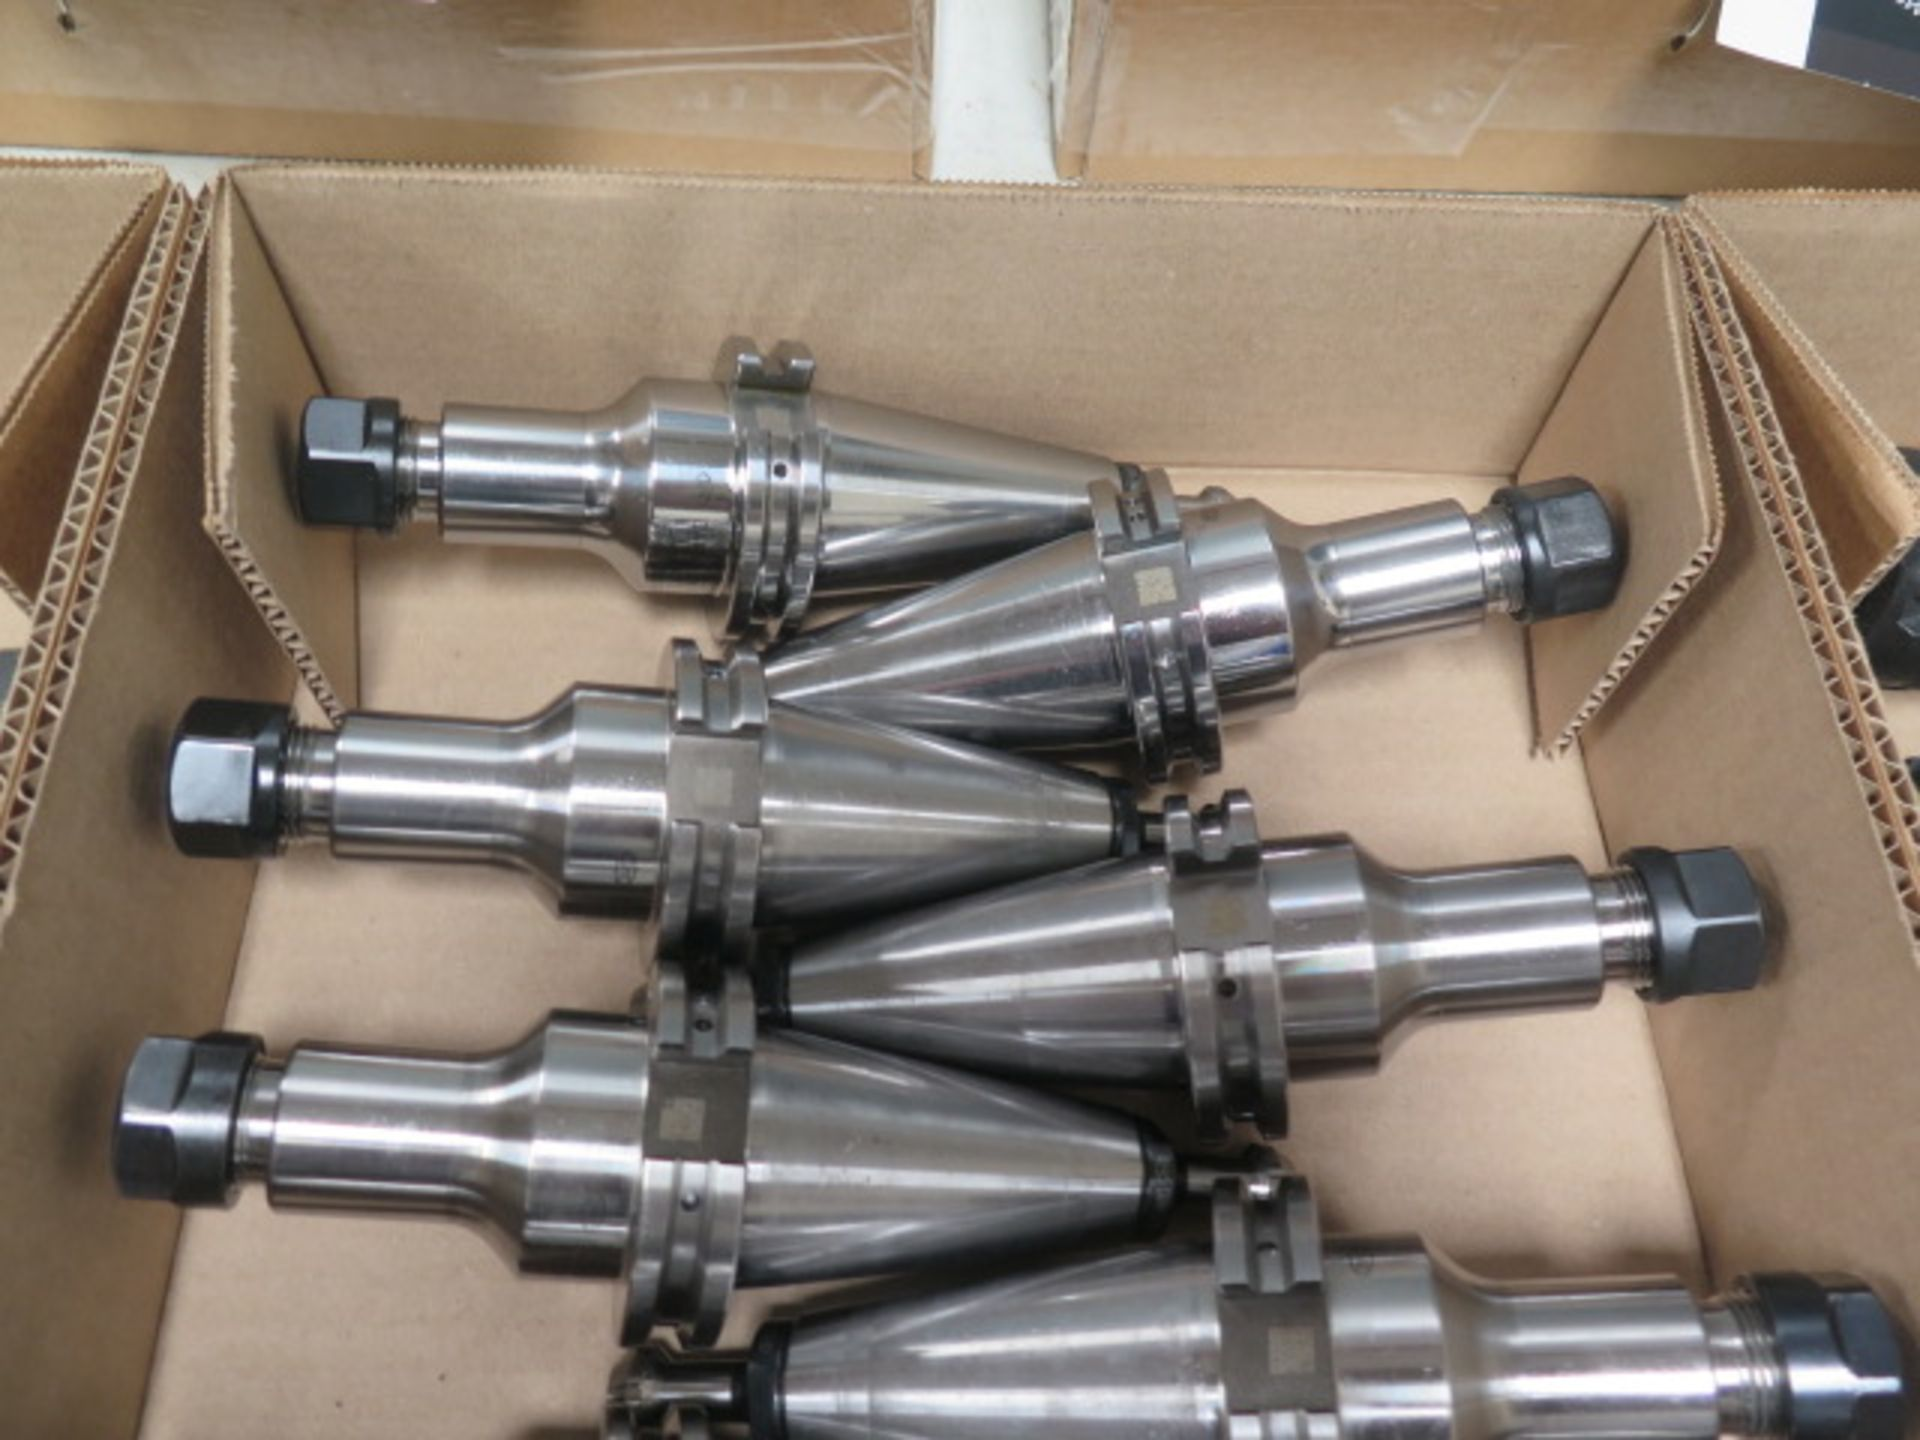 CAT-40 Taper 25,000 RPM Balanced ER16 Collet Chucks (10) (SOLD AS-IS - NO WARRANTY) - Image 3 of 5